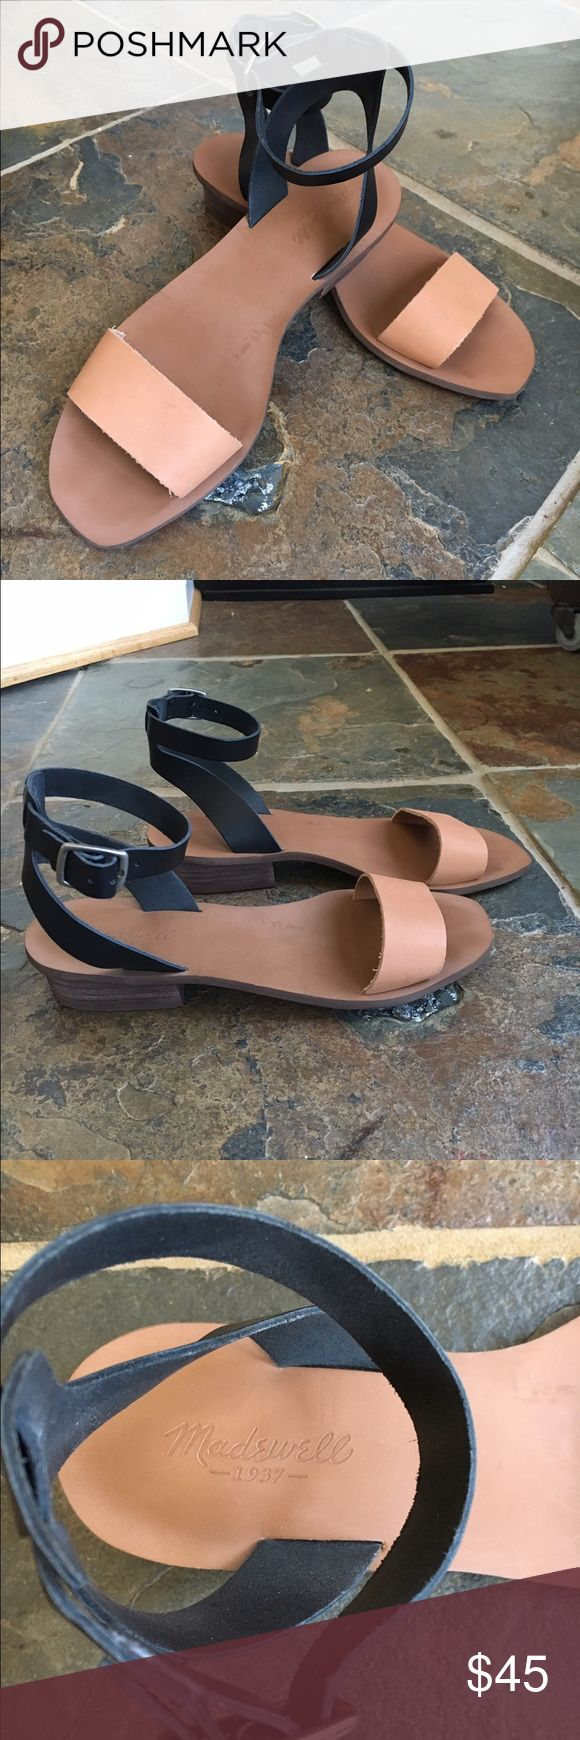 Madewell 2 time low heel ankle wrap sandals Two tone, ankle strap (buckle), low heeled sandals, worn 2 times, excellent condition. Madewell Shoes Sandals